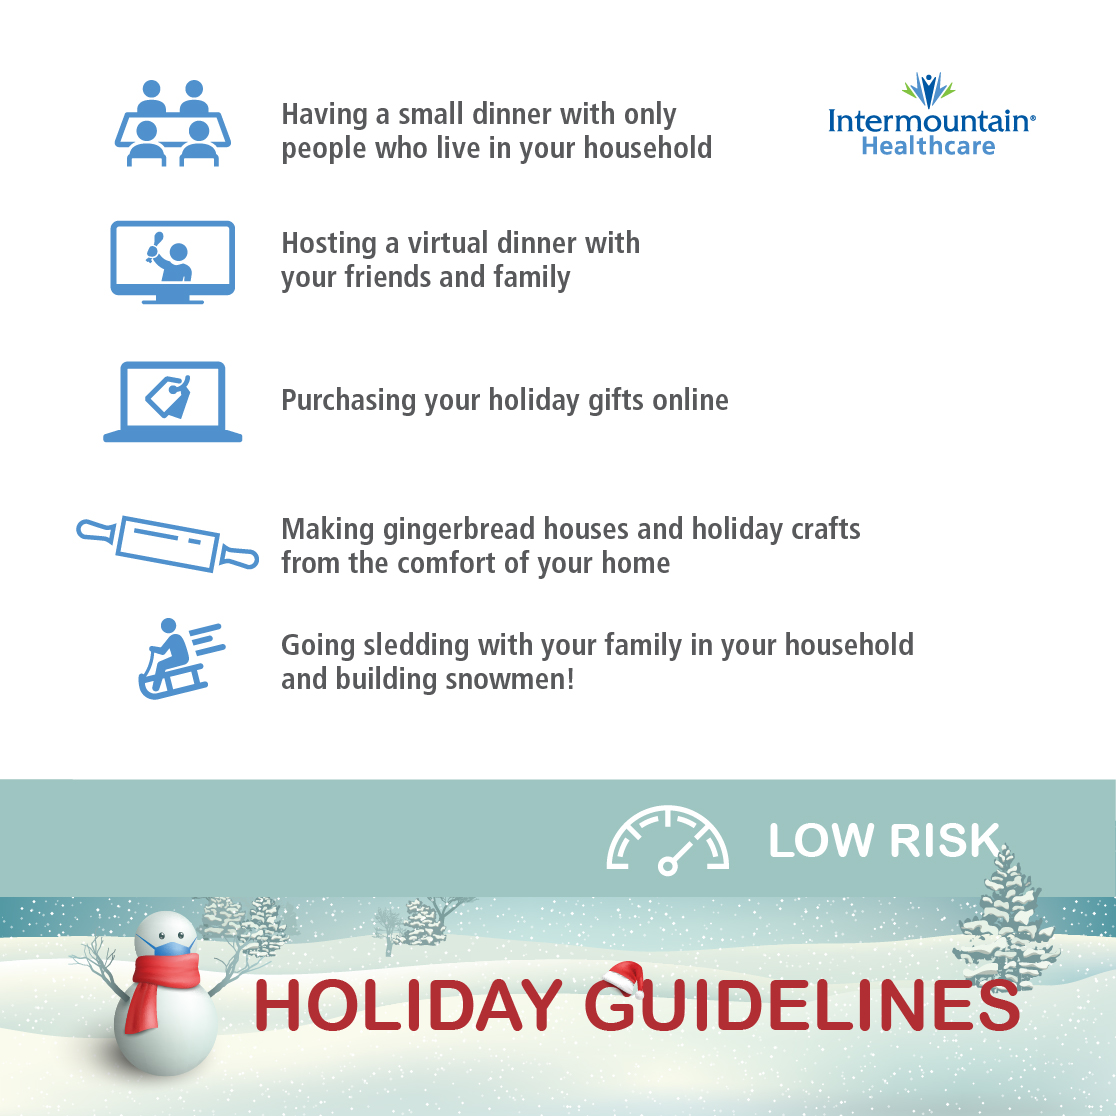 holiday guidelines low